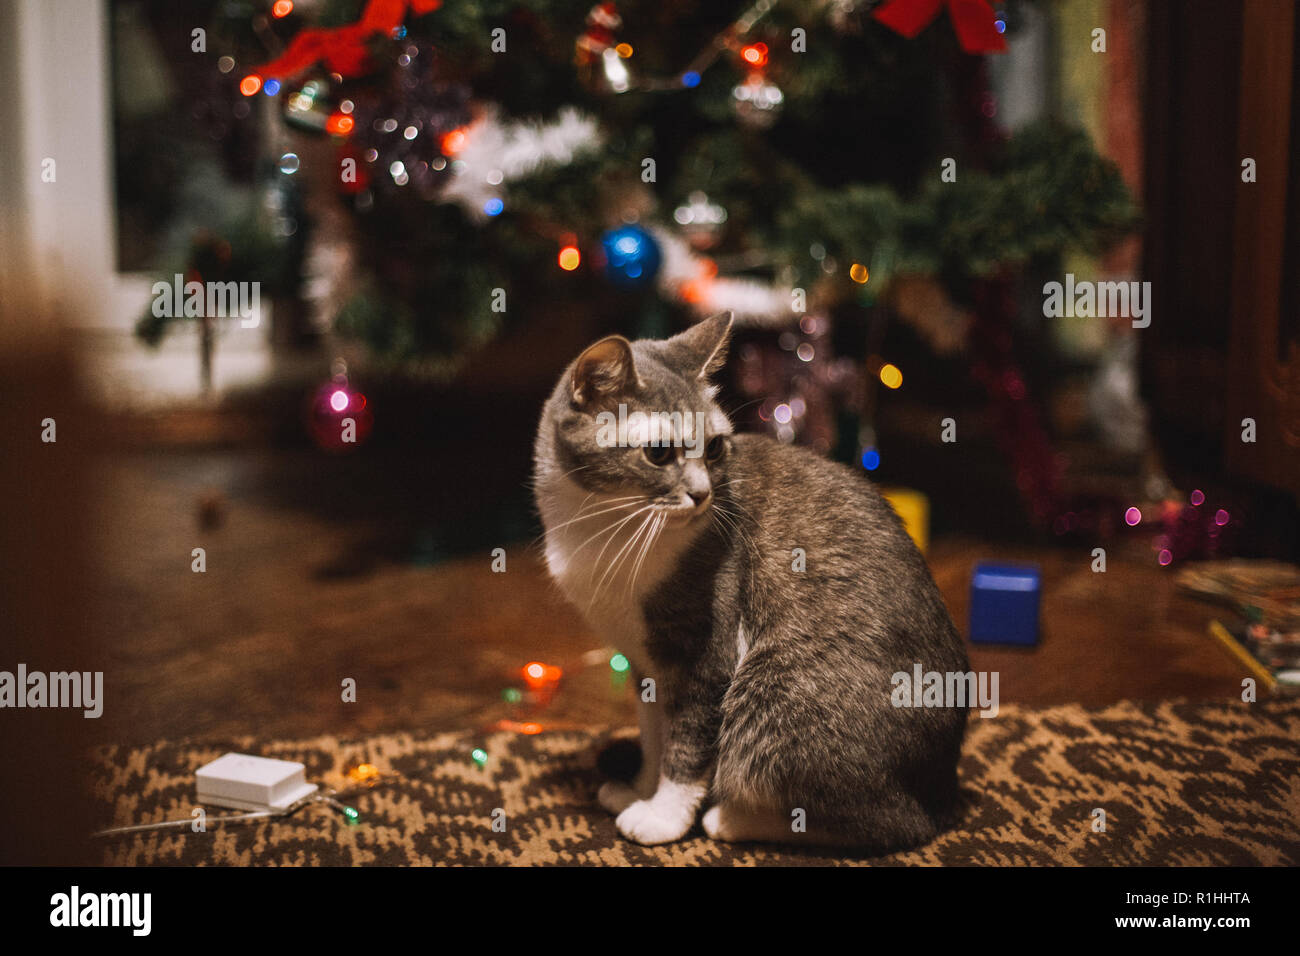 Chat assis sur le sol à côté de l'arbre de Noël à la maison Photo Stock